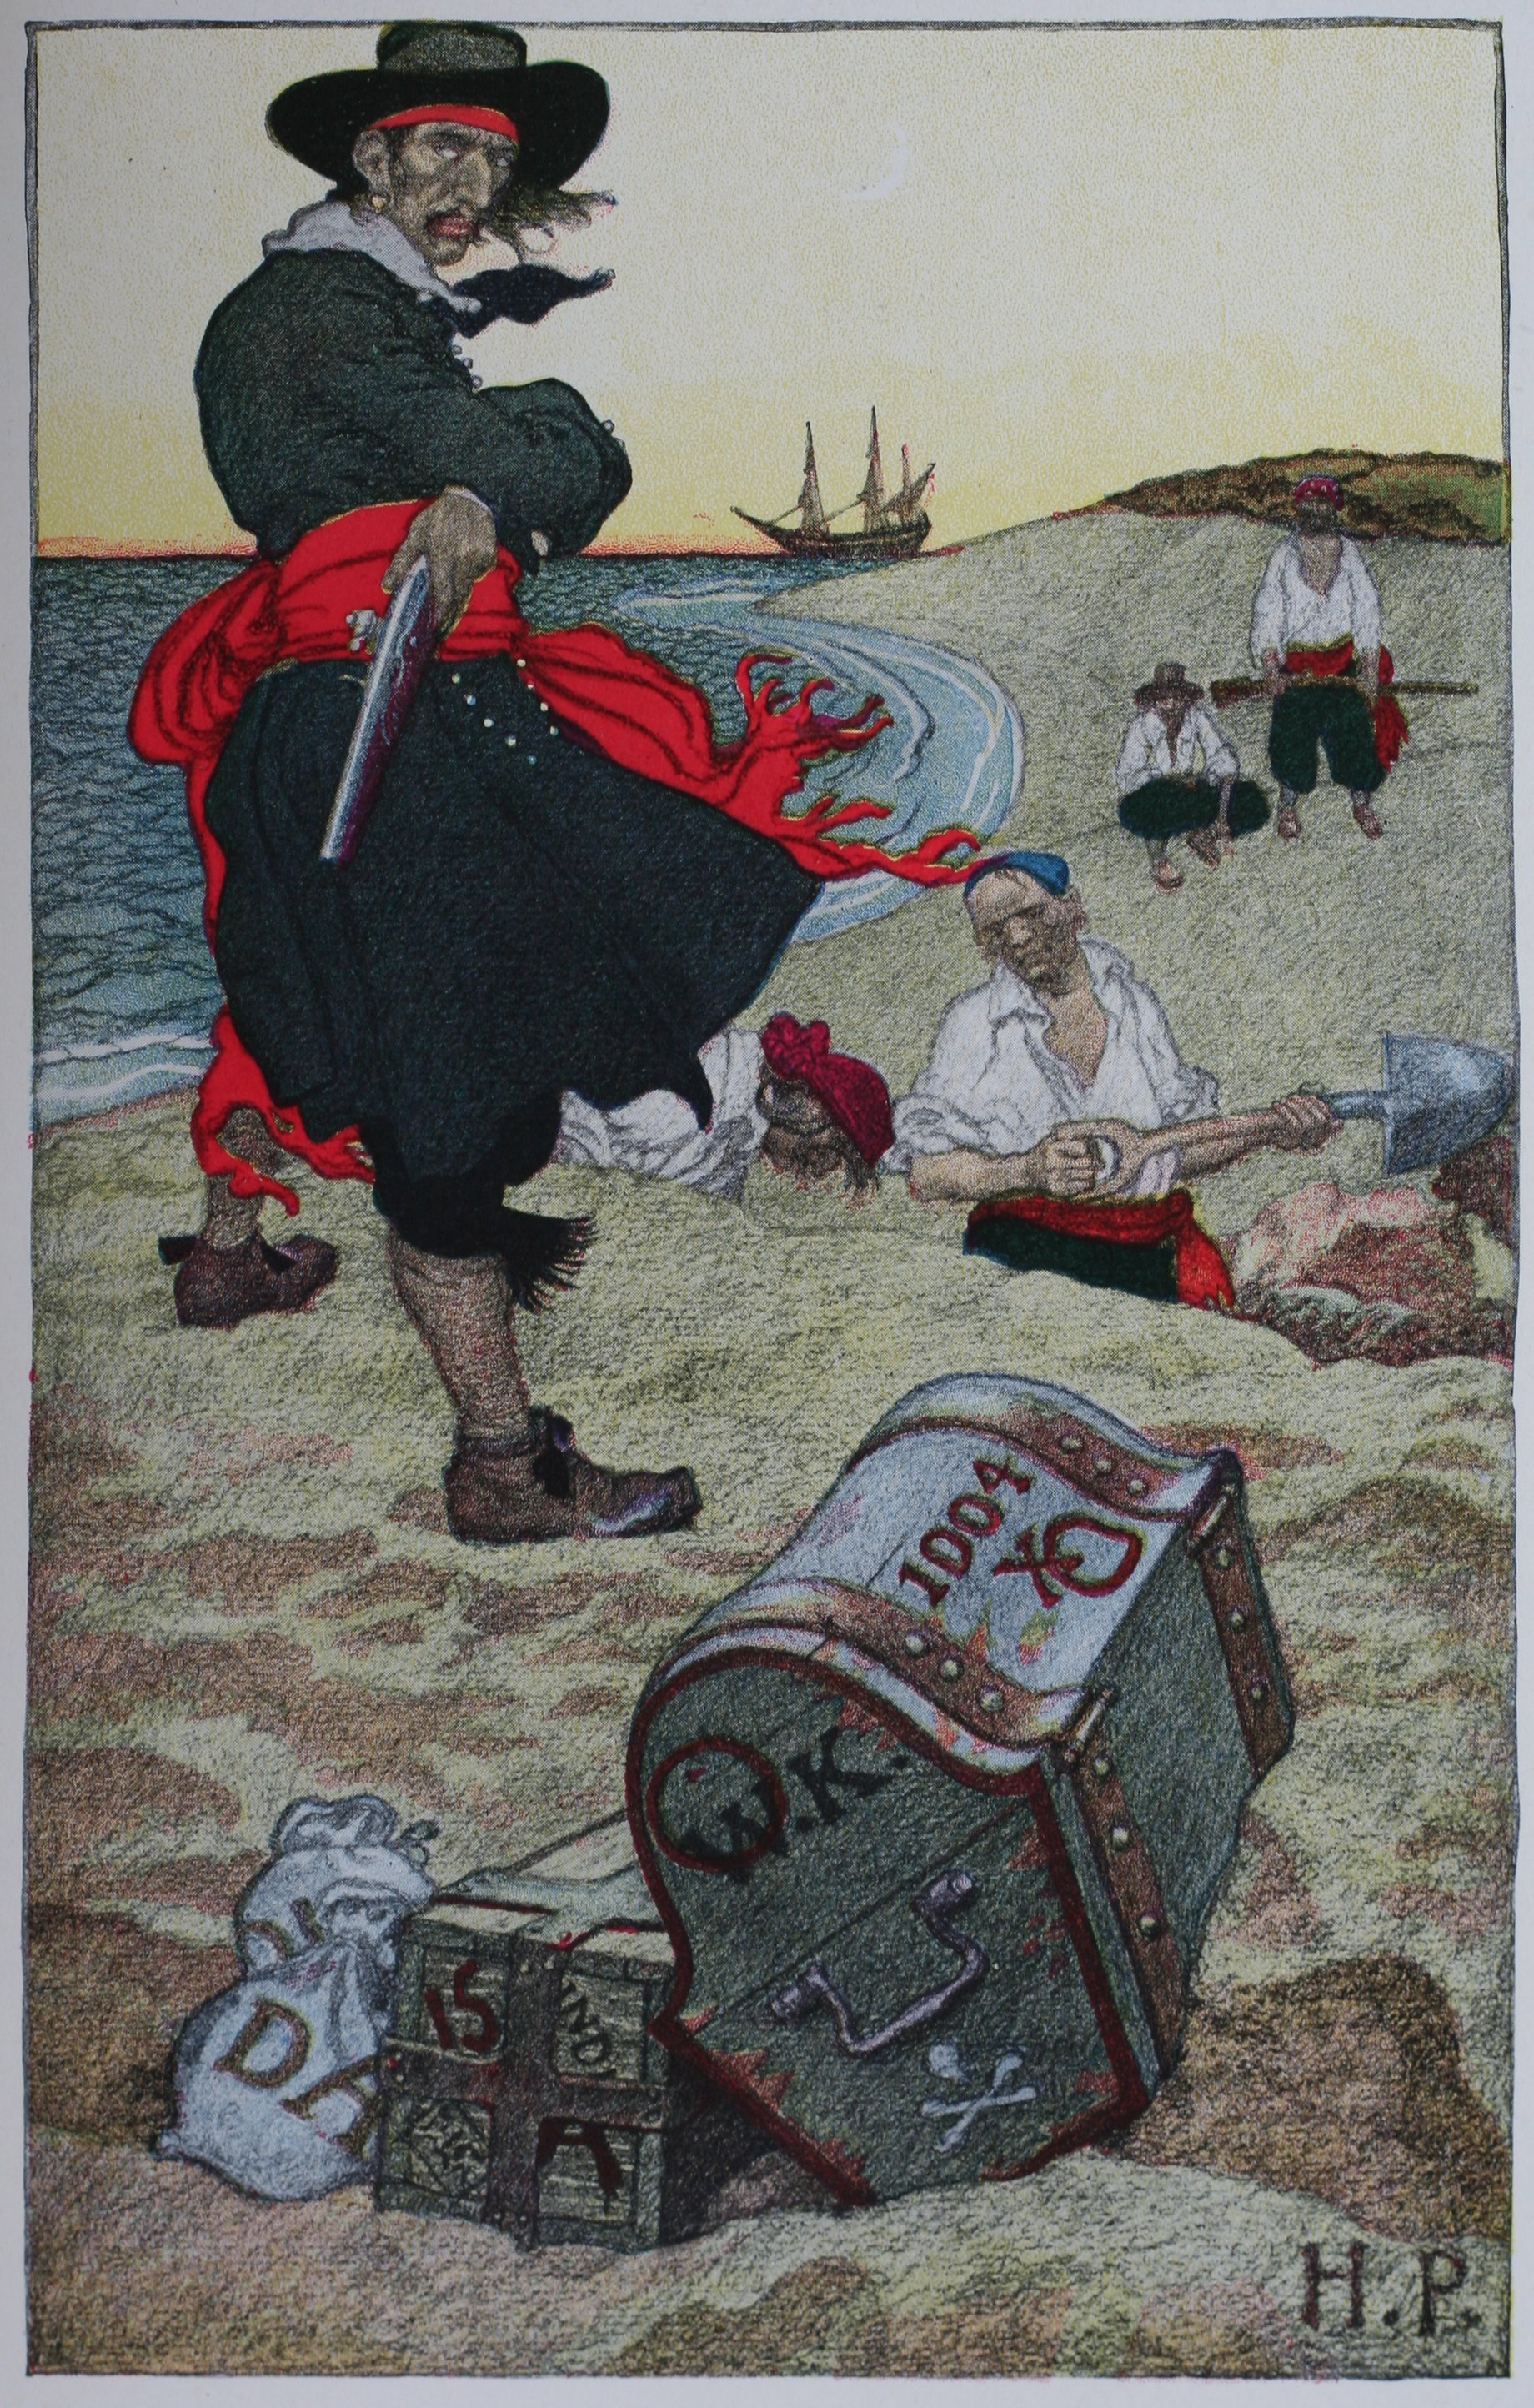 https://upload.wikimedia.org/wikipedia/commons/e/e9/Pyle_pirates_burying2.jpg